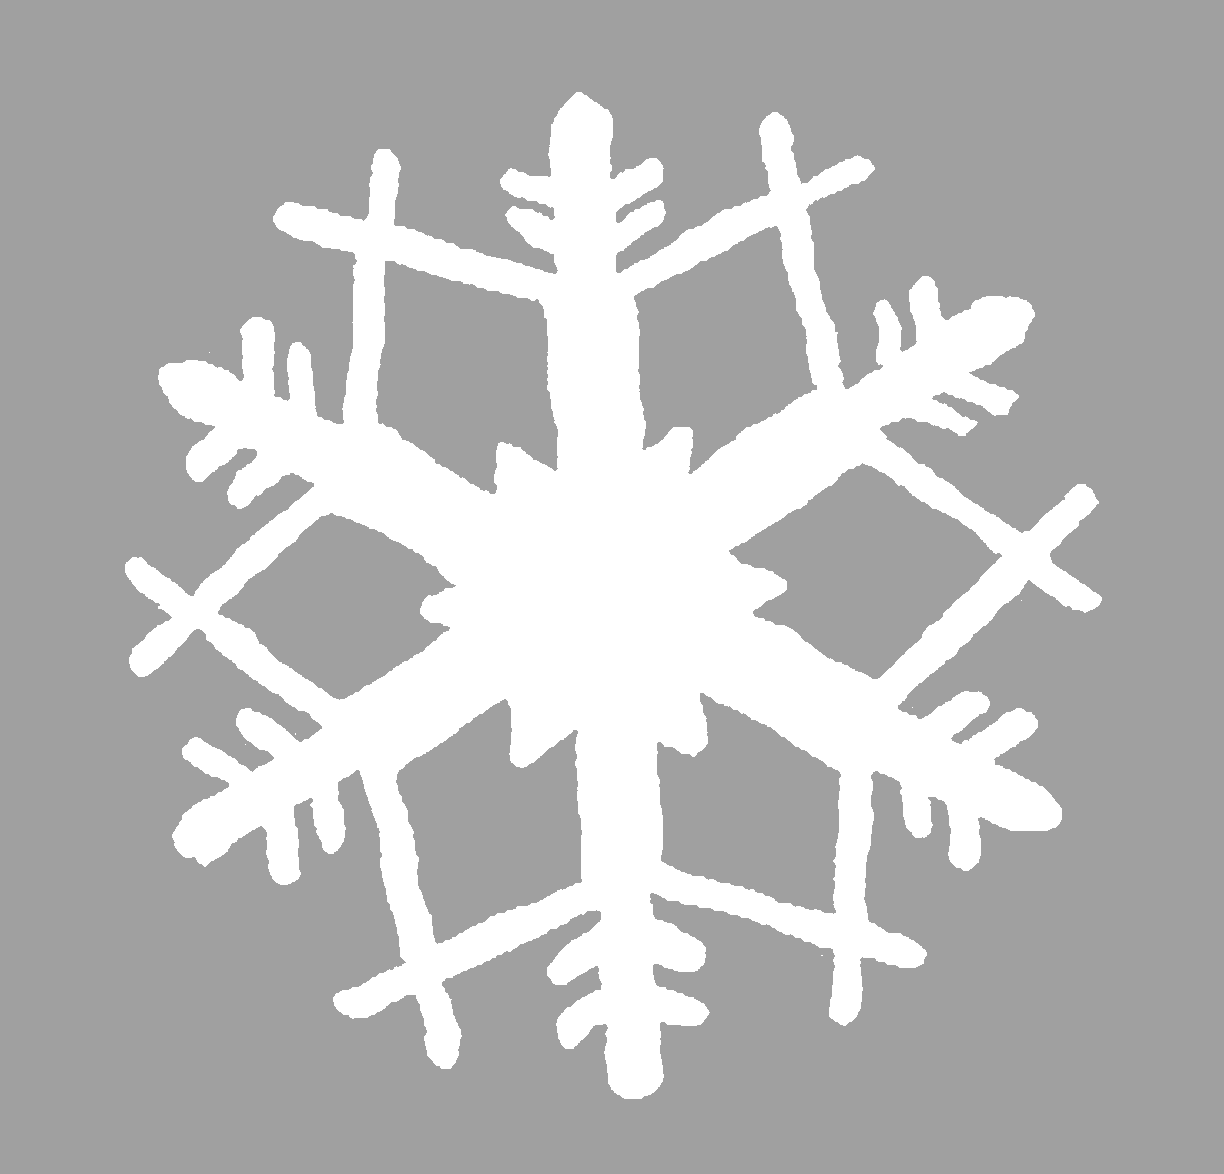 Snowflake silhouette png. The graphics monarch digital